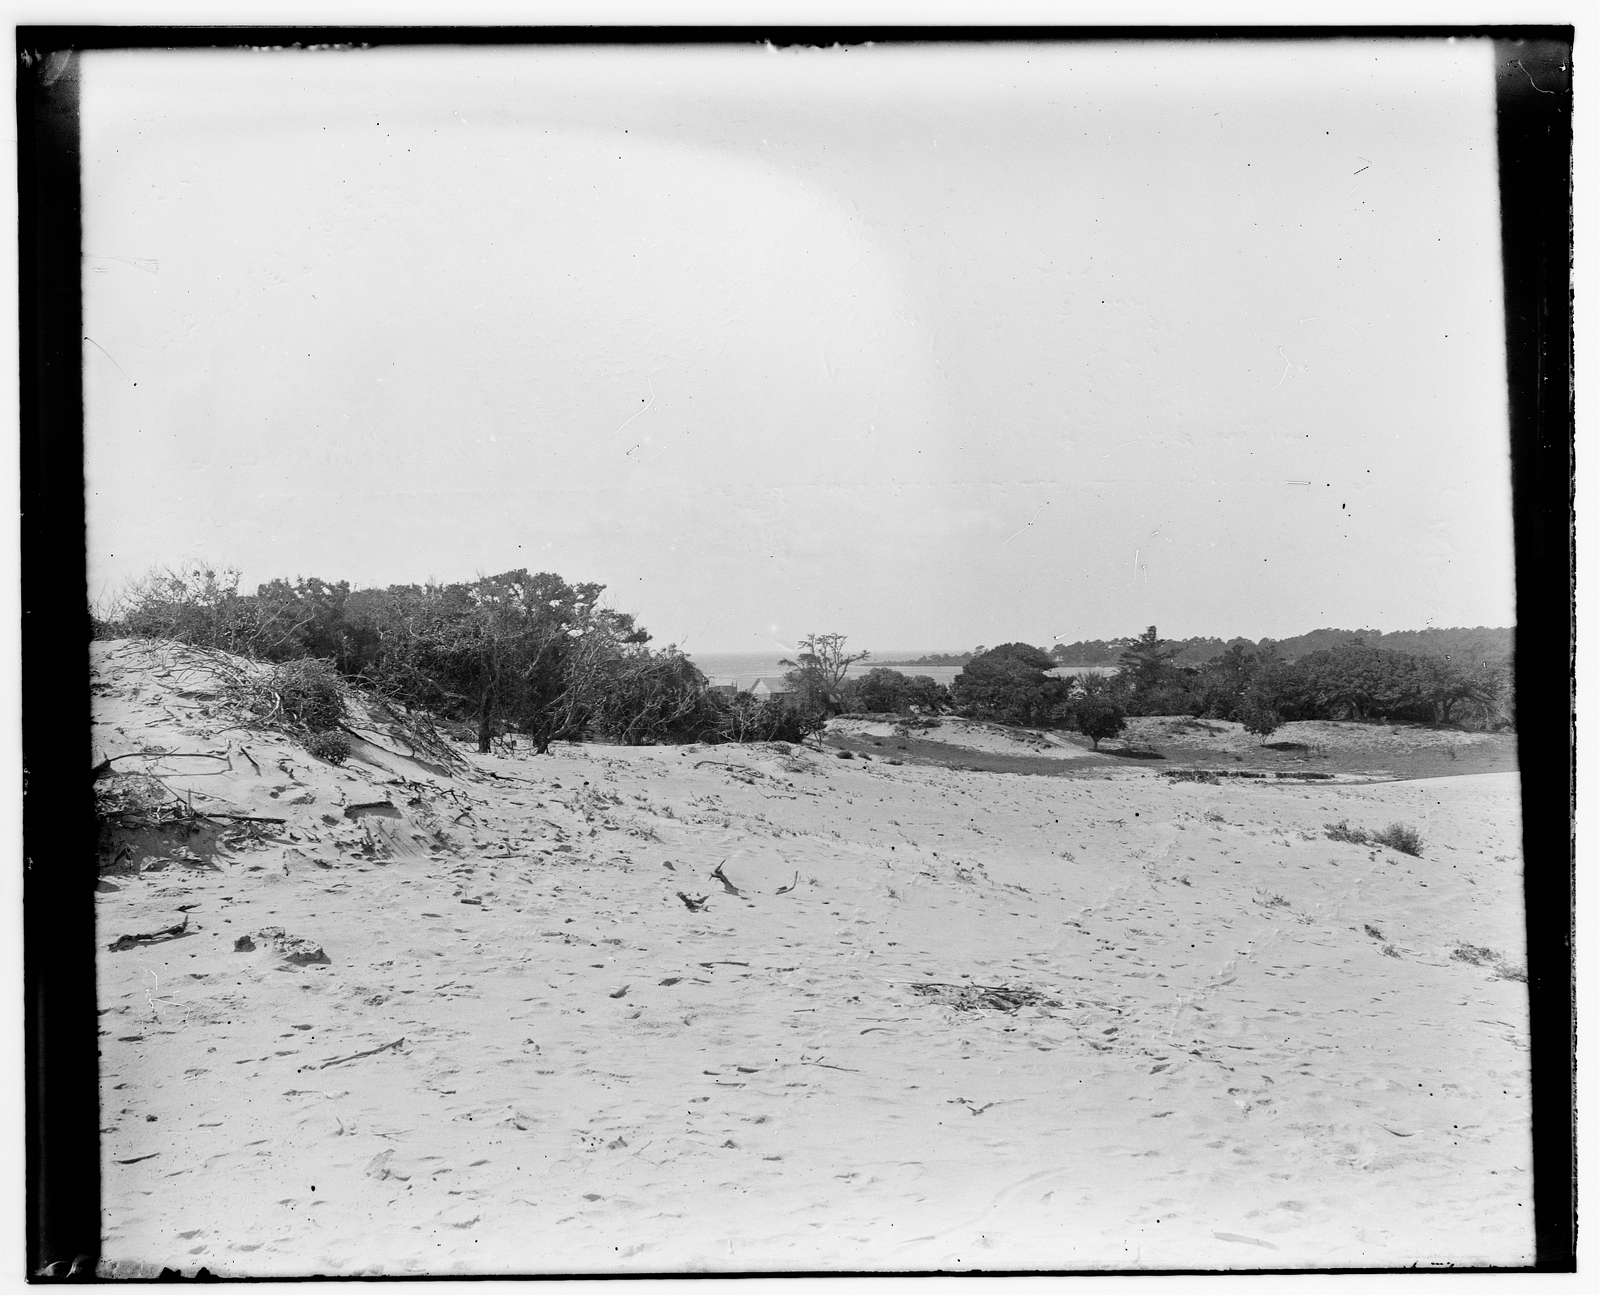 [Kitty Hawk Bay viewed from the Wright brothers' 1900 camp]